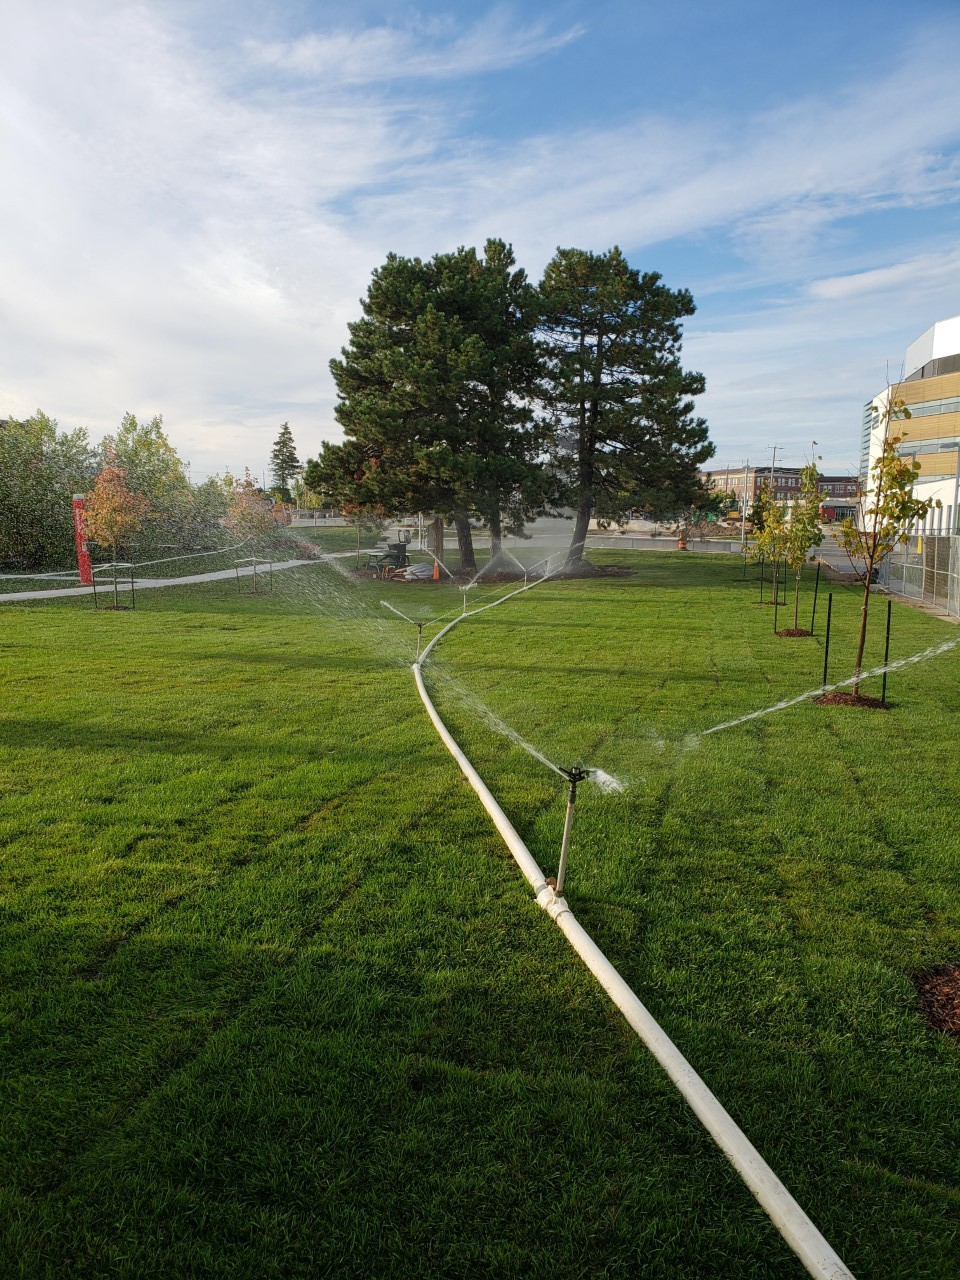 view of water spraying in a garden